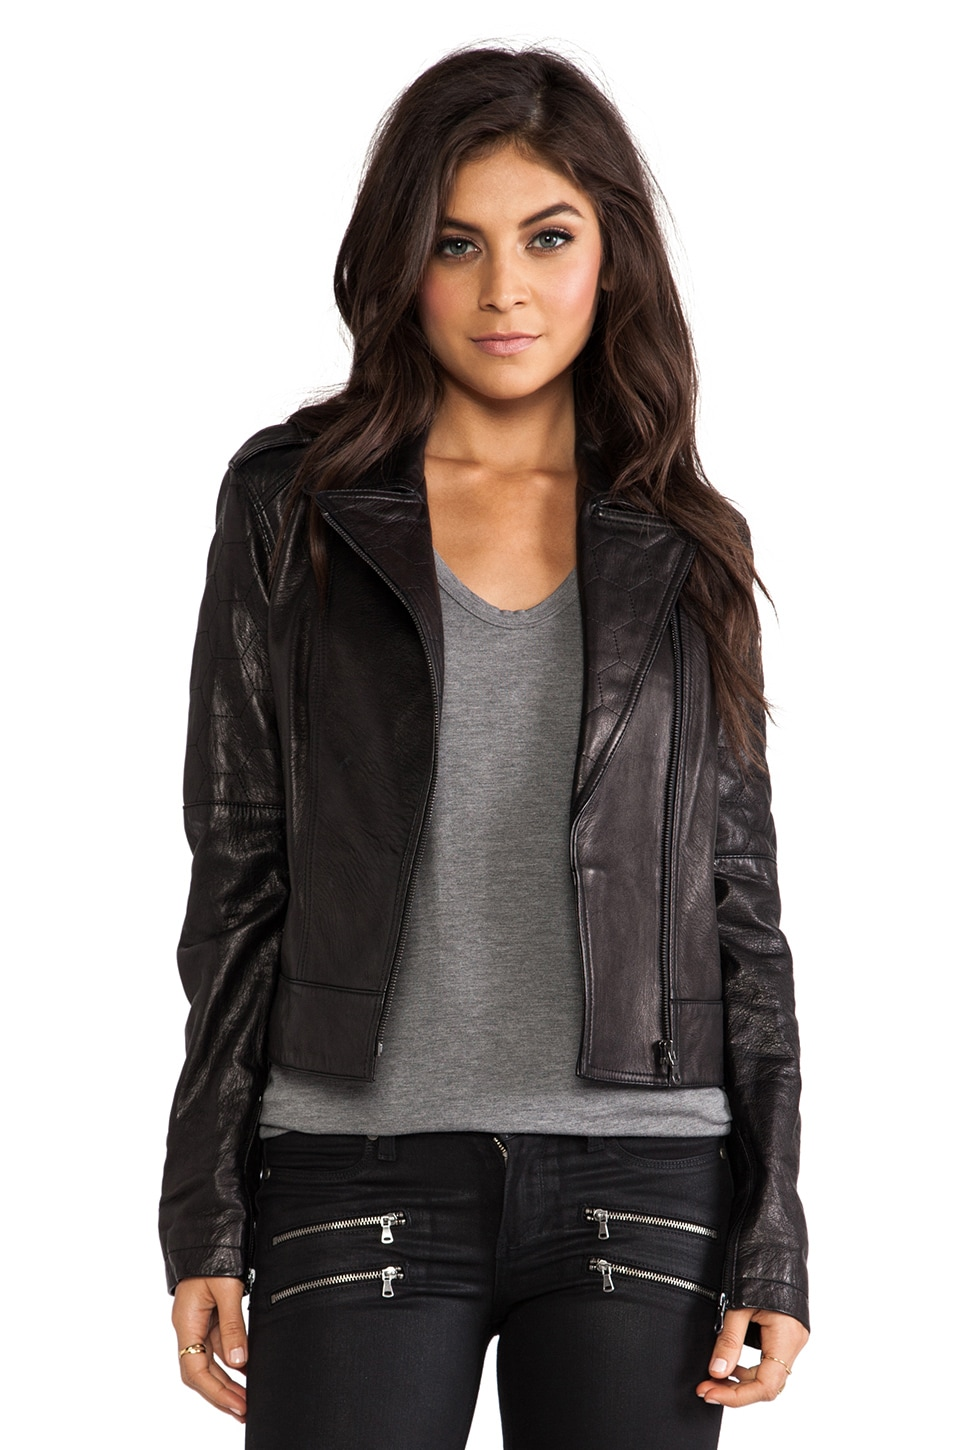 Paige Denim Sacha Leather Jacket in Black